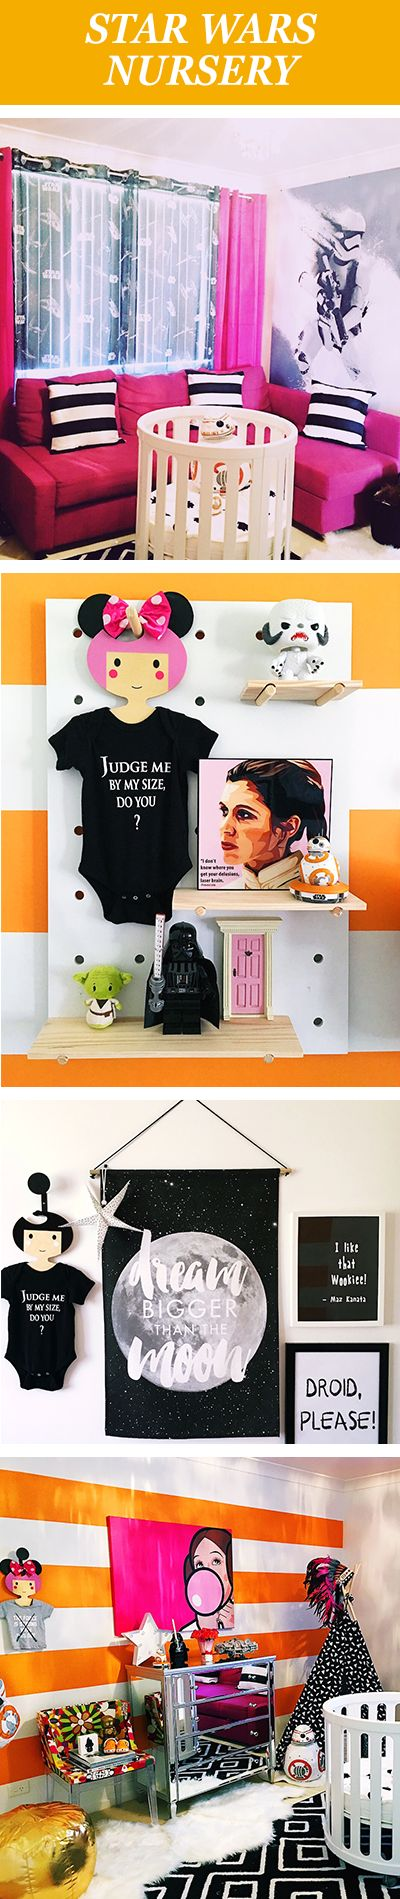 With its bold pops of color, eclectic touches, and carefully chosen character memorabilia, this has to be the most creative and edgy Star Wars nursery you've ever laid eyes on.